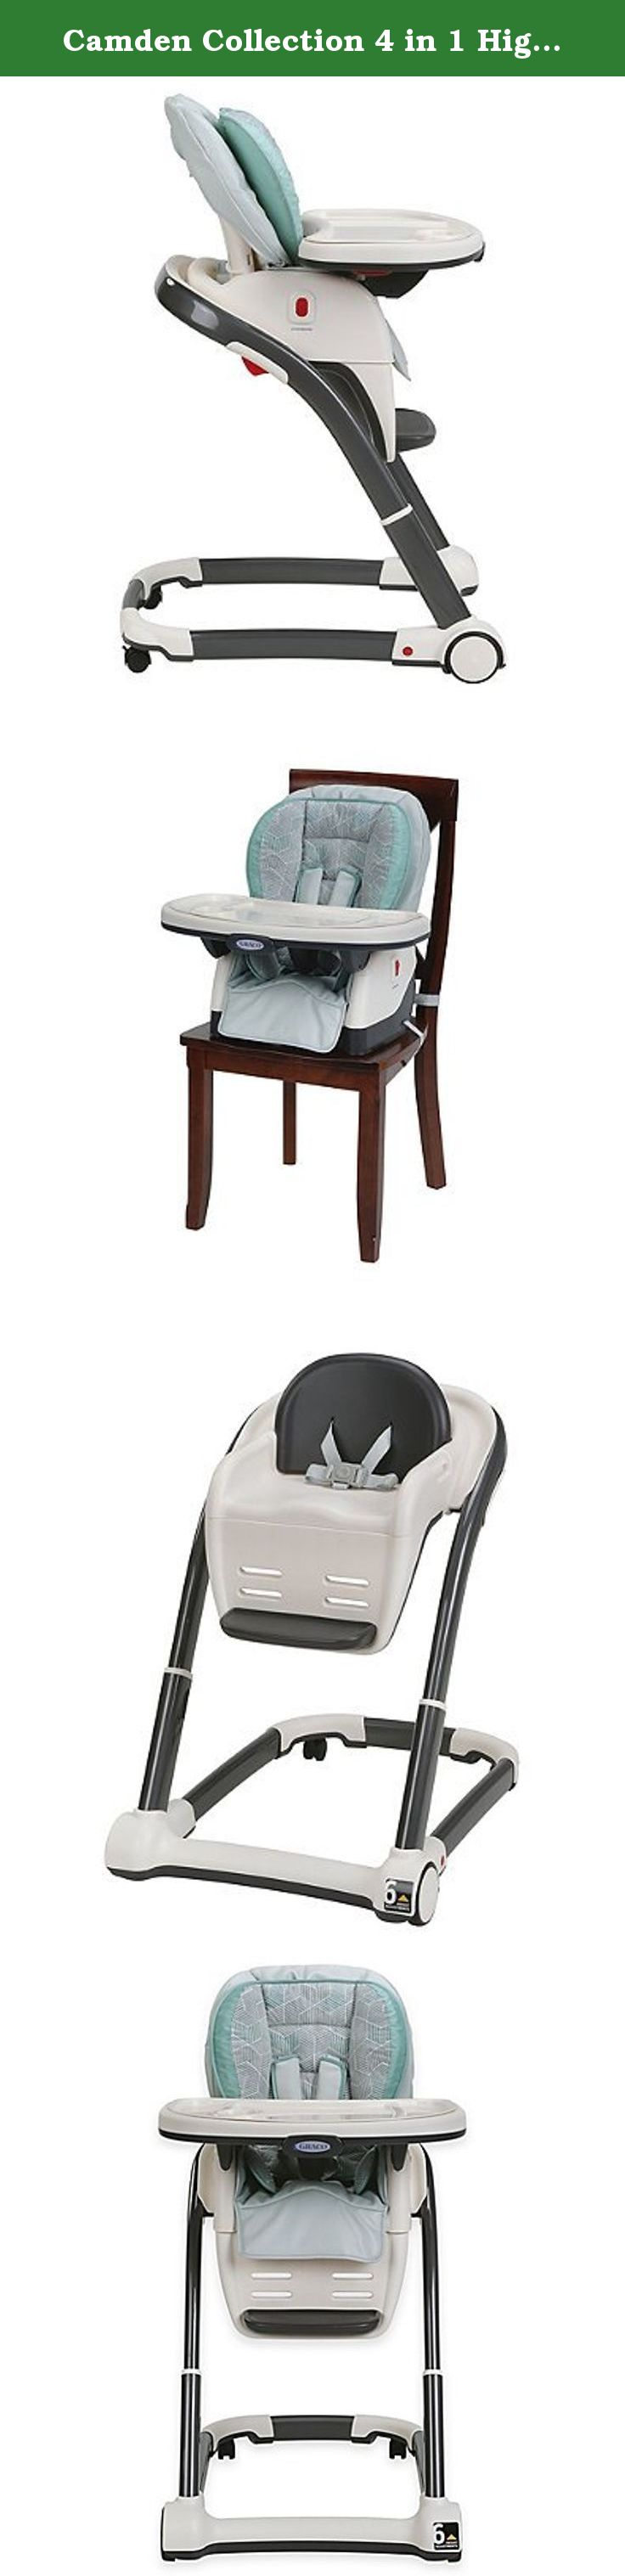 Camden Collection 4 In 1 High Chair The Graco Blossom Dlx 4 In 1